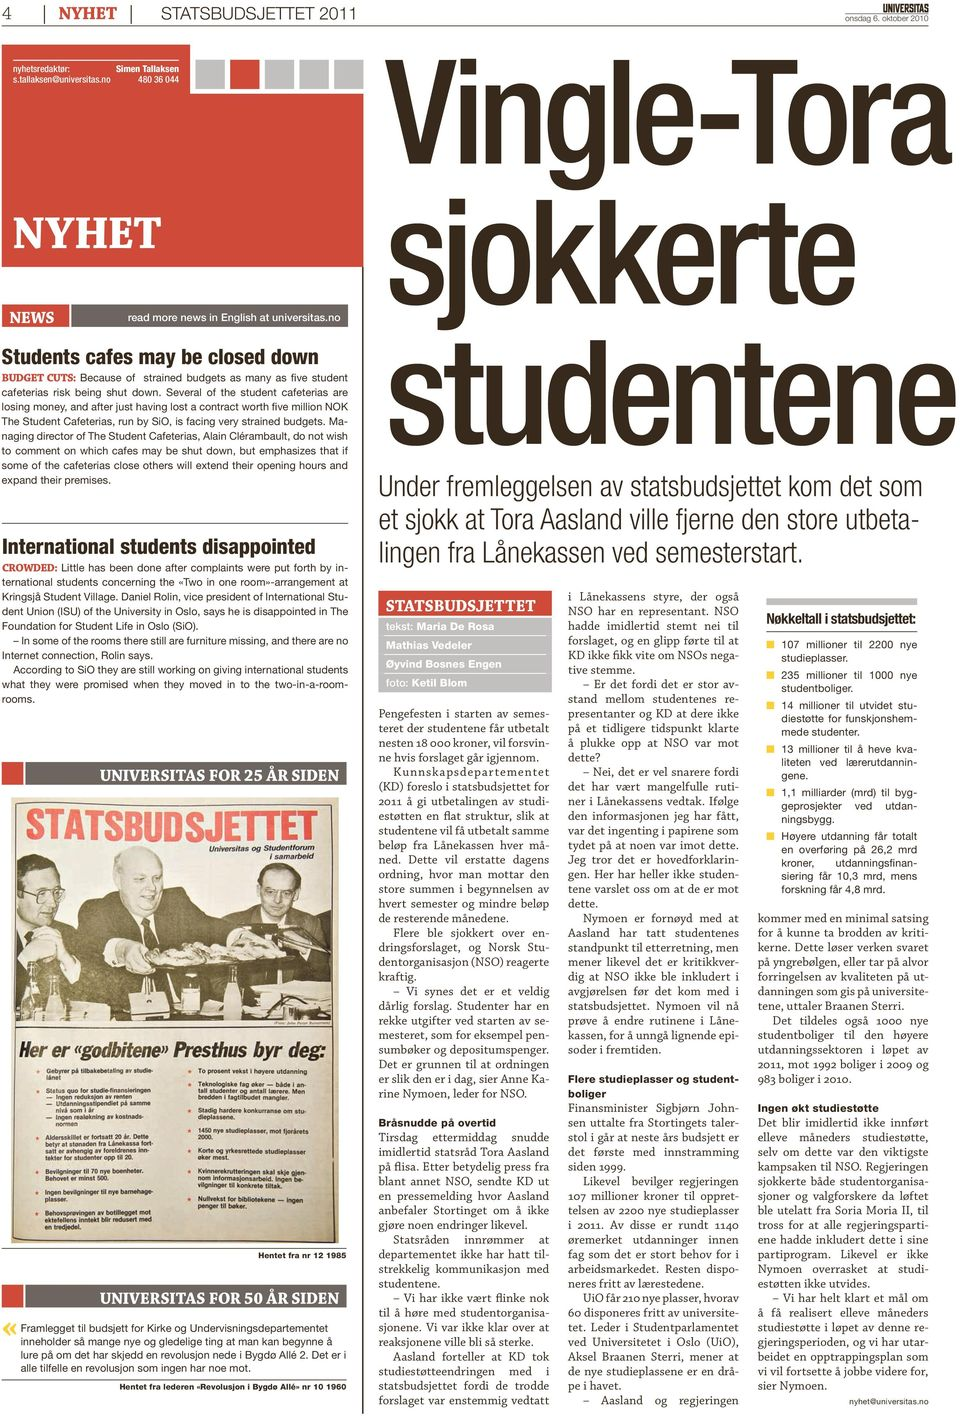 Several of the student cafeterias are losing money, and after just having lost a contract worth five million NOK The Student Cafeterias, run by SiO, is facing very strained budgets.